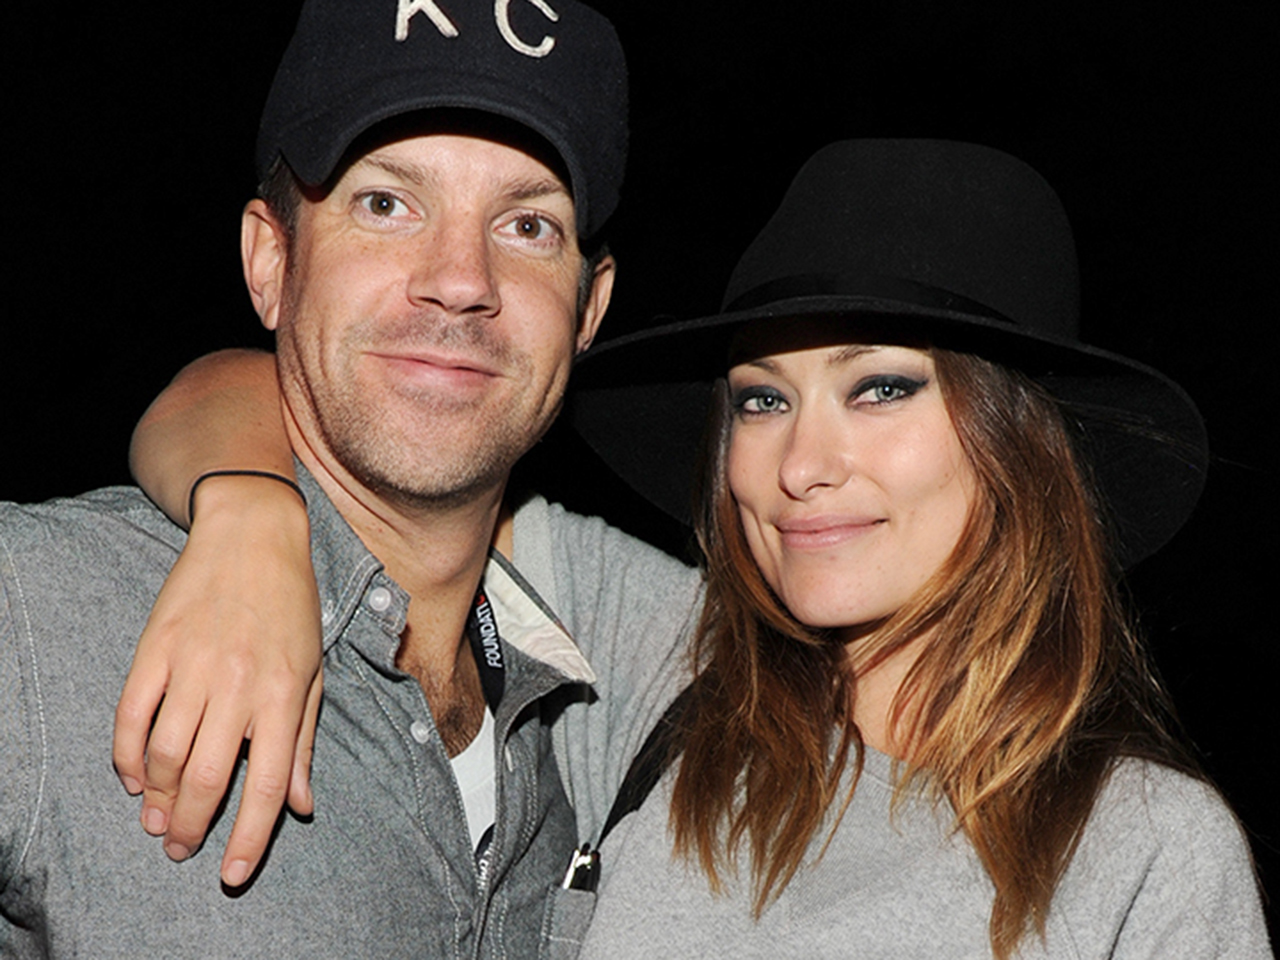 Jason Sudeikis and Olivia Wilde met on the set of